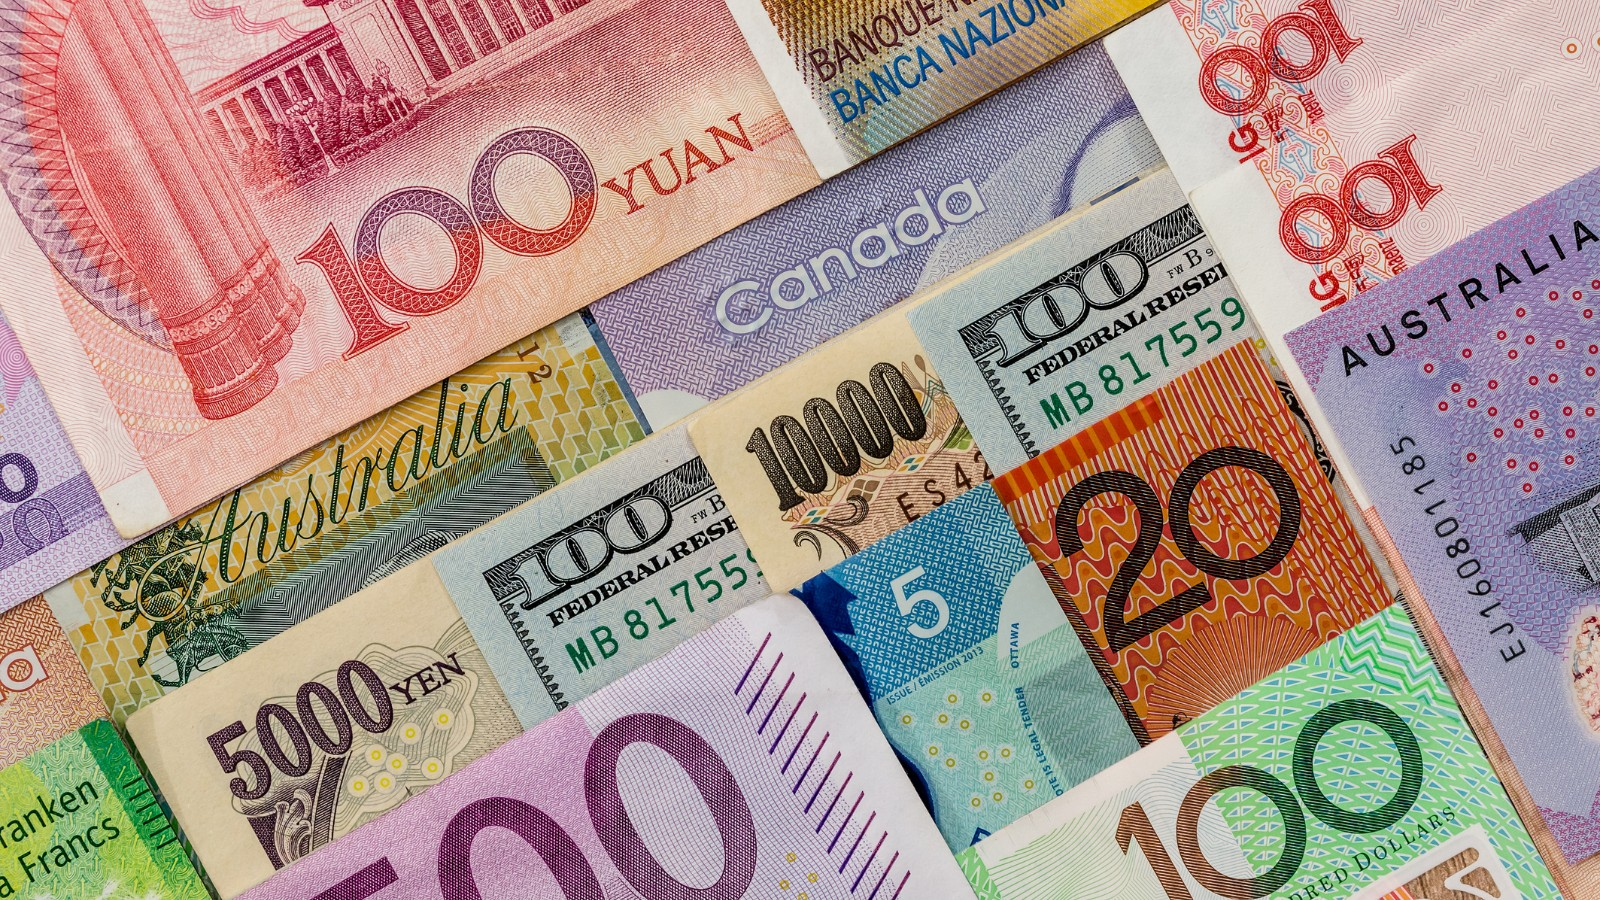 For More Information About Sending Money Internationally See The Consumer Financial Protection Bureau Transfers Website